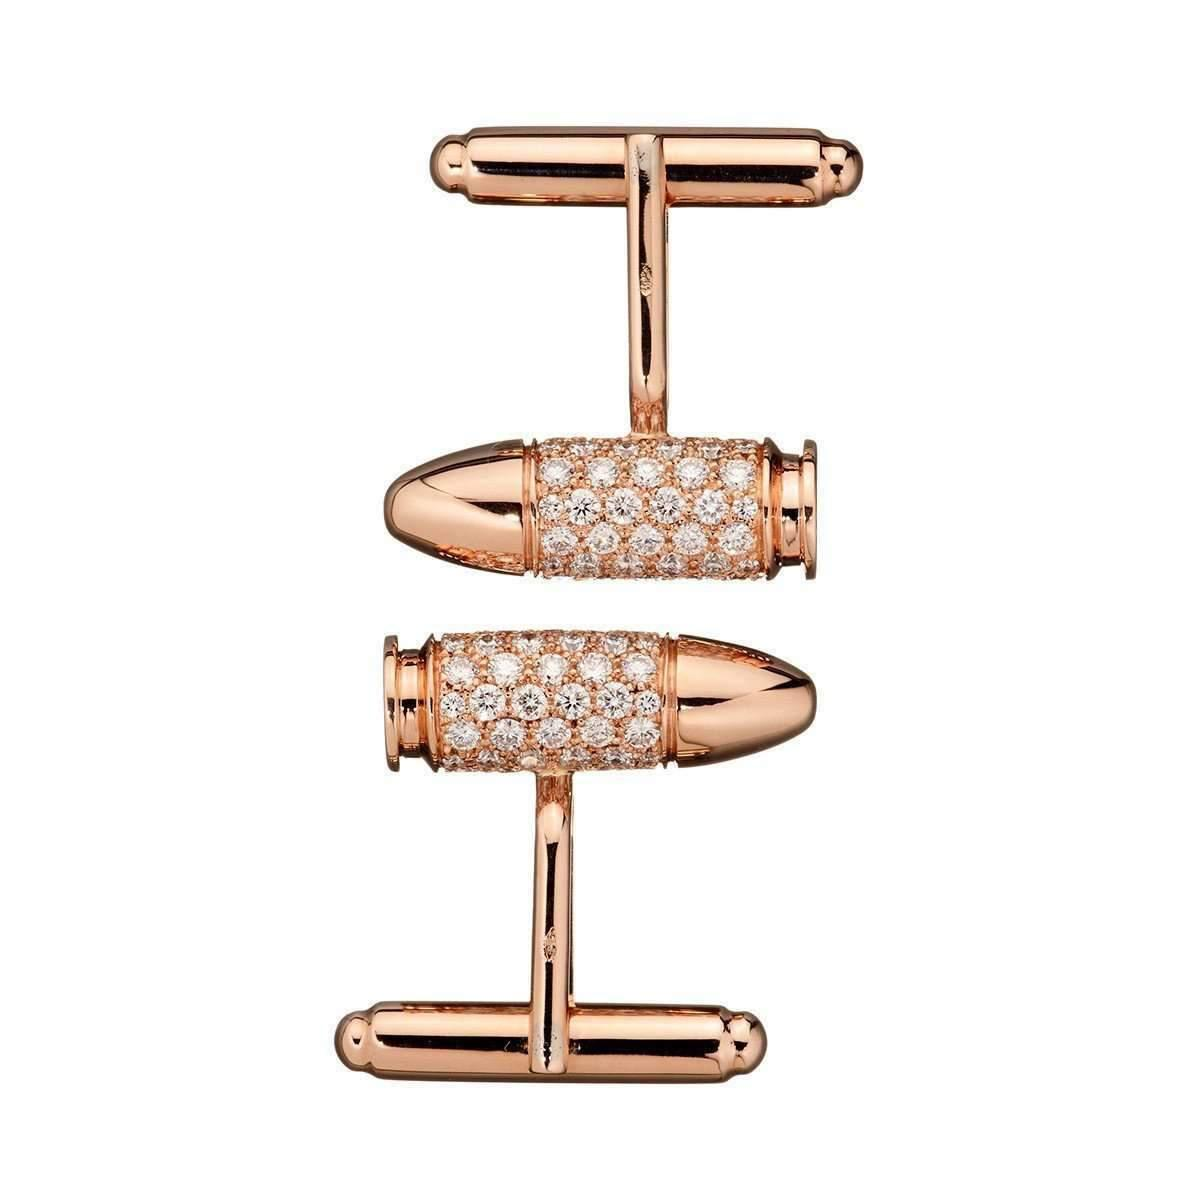 Akillis Bang Bang Rose Gold Cufflinks Nkzay